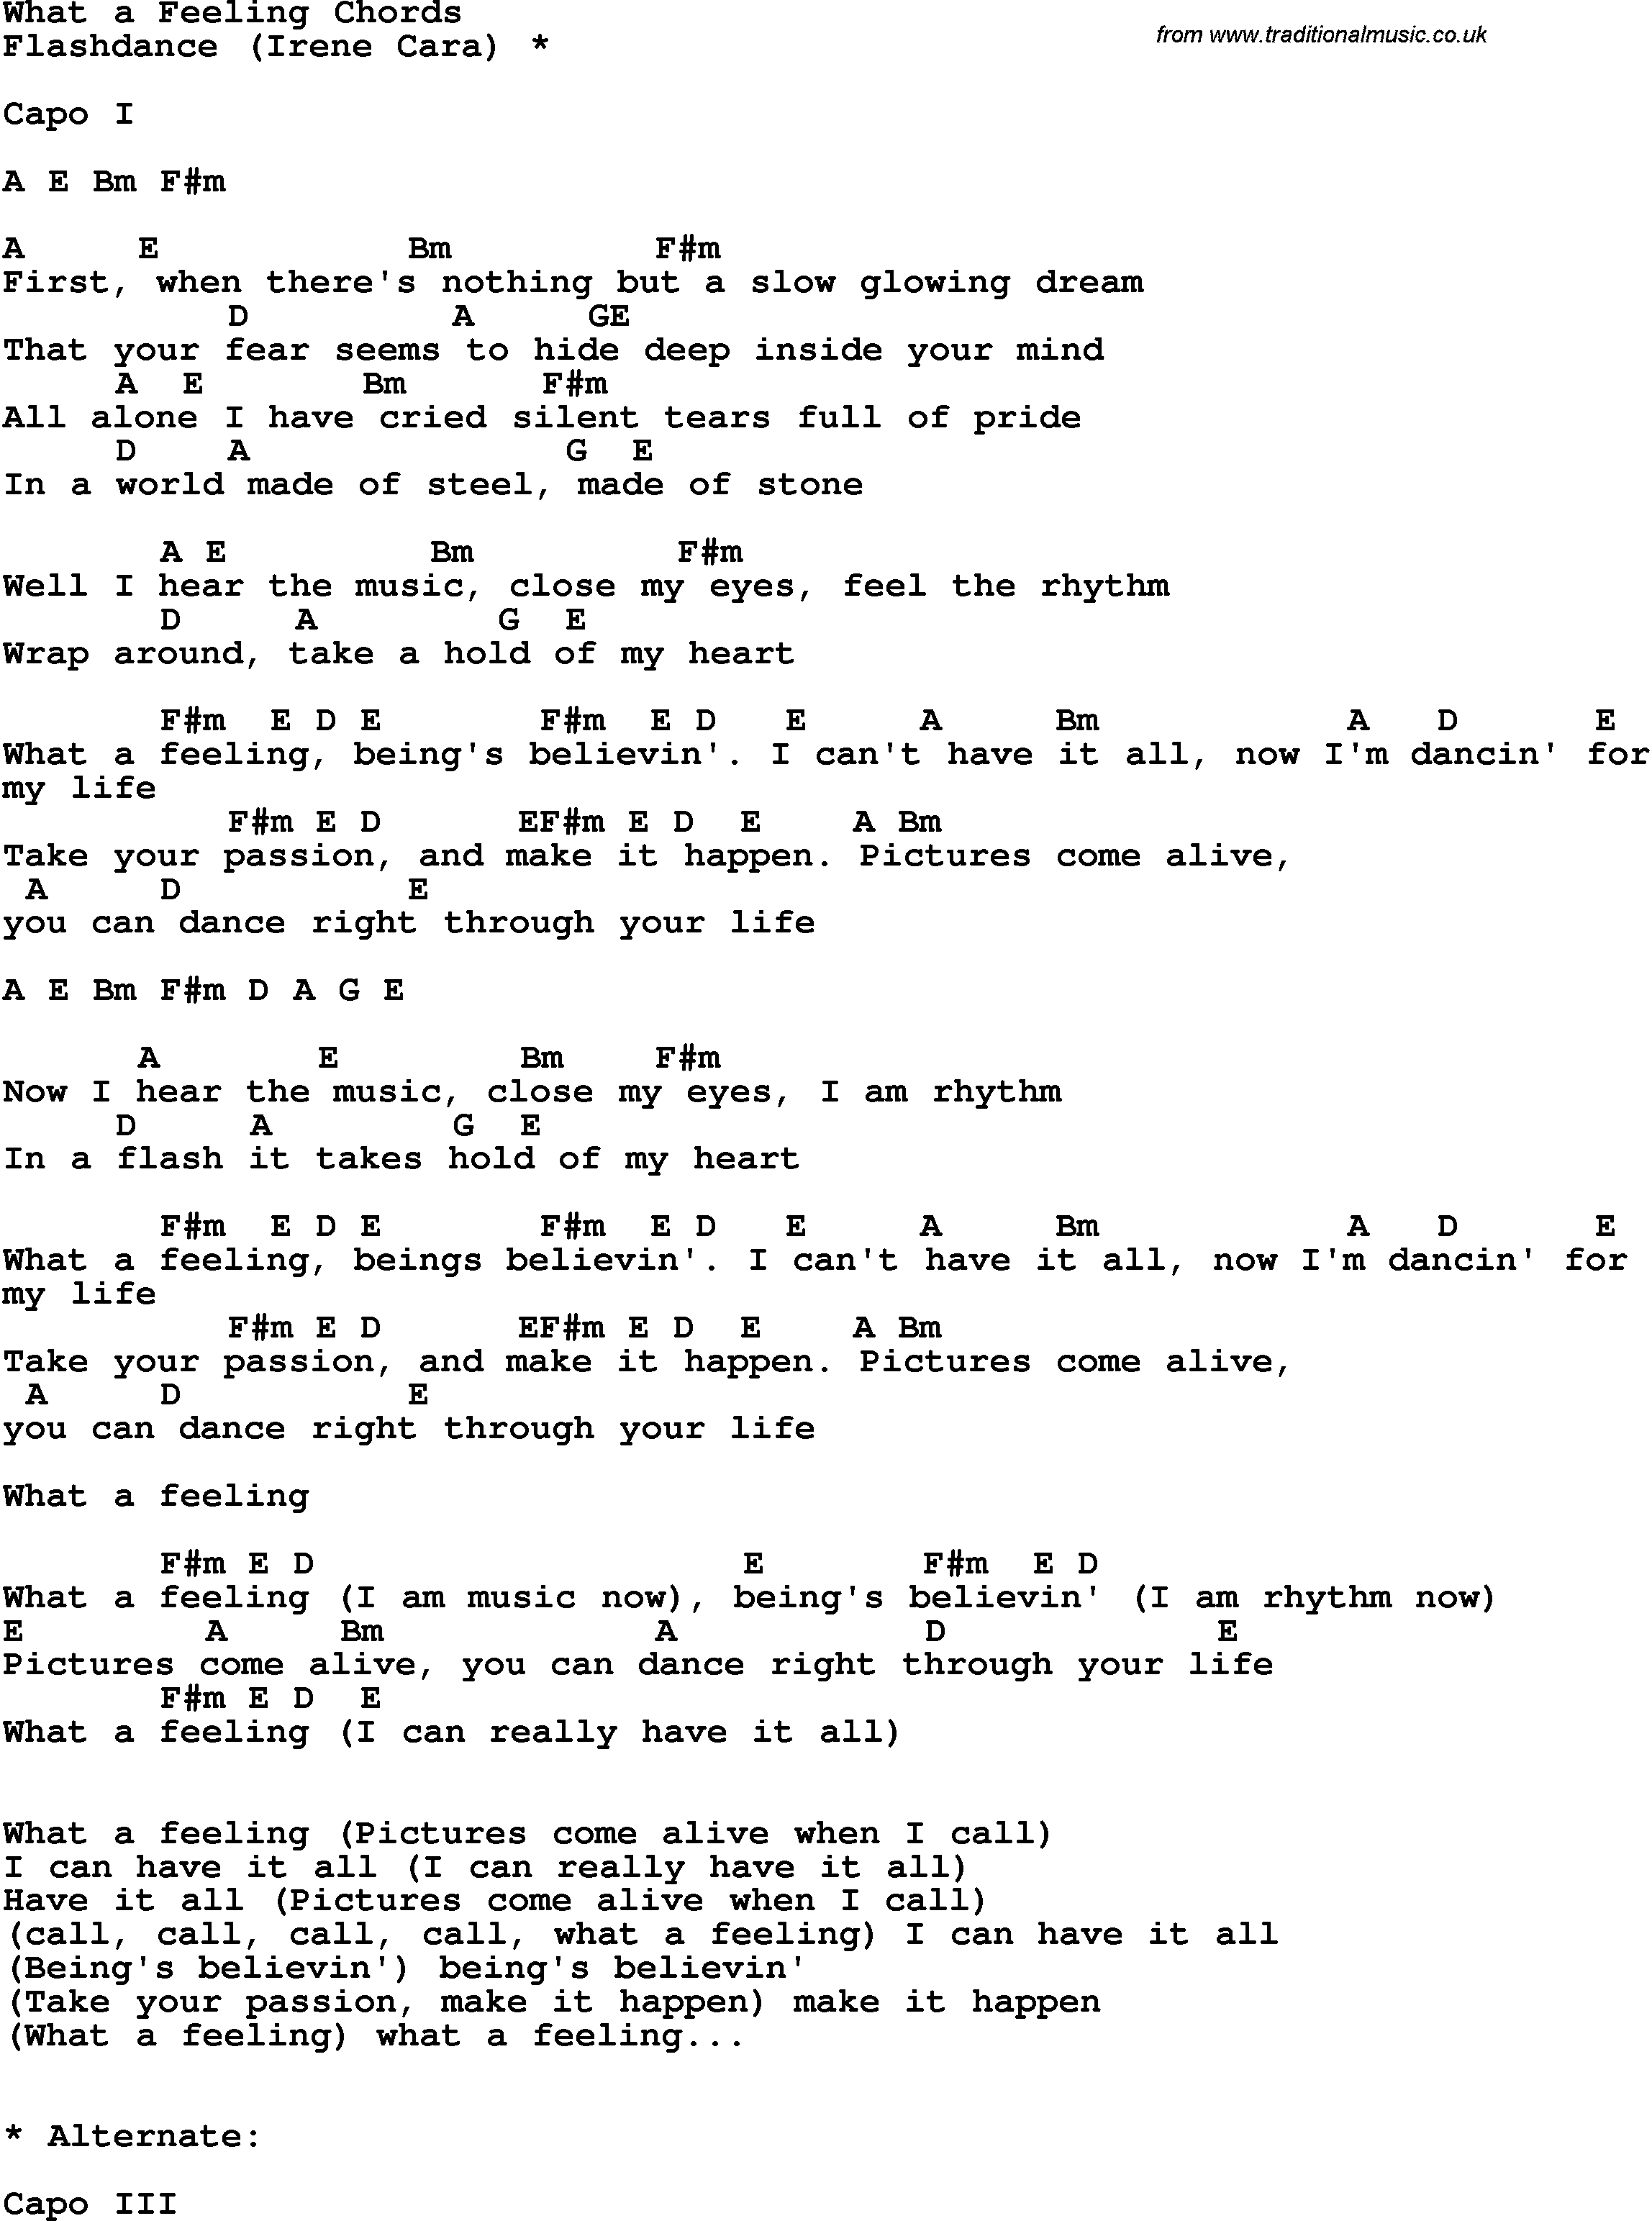 Song Lyrics With Guitar Chords For What A Feeling